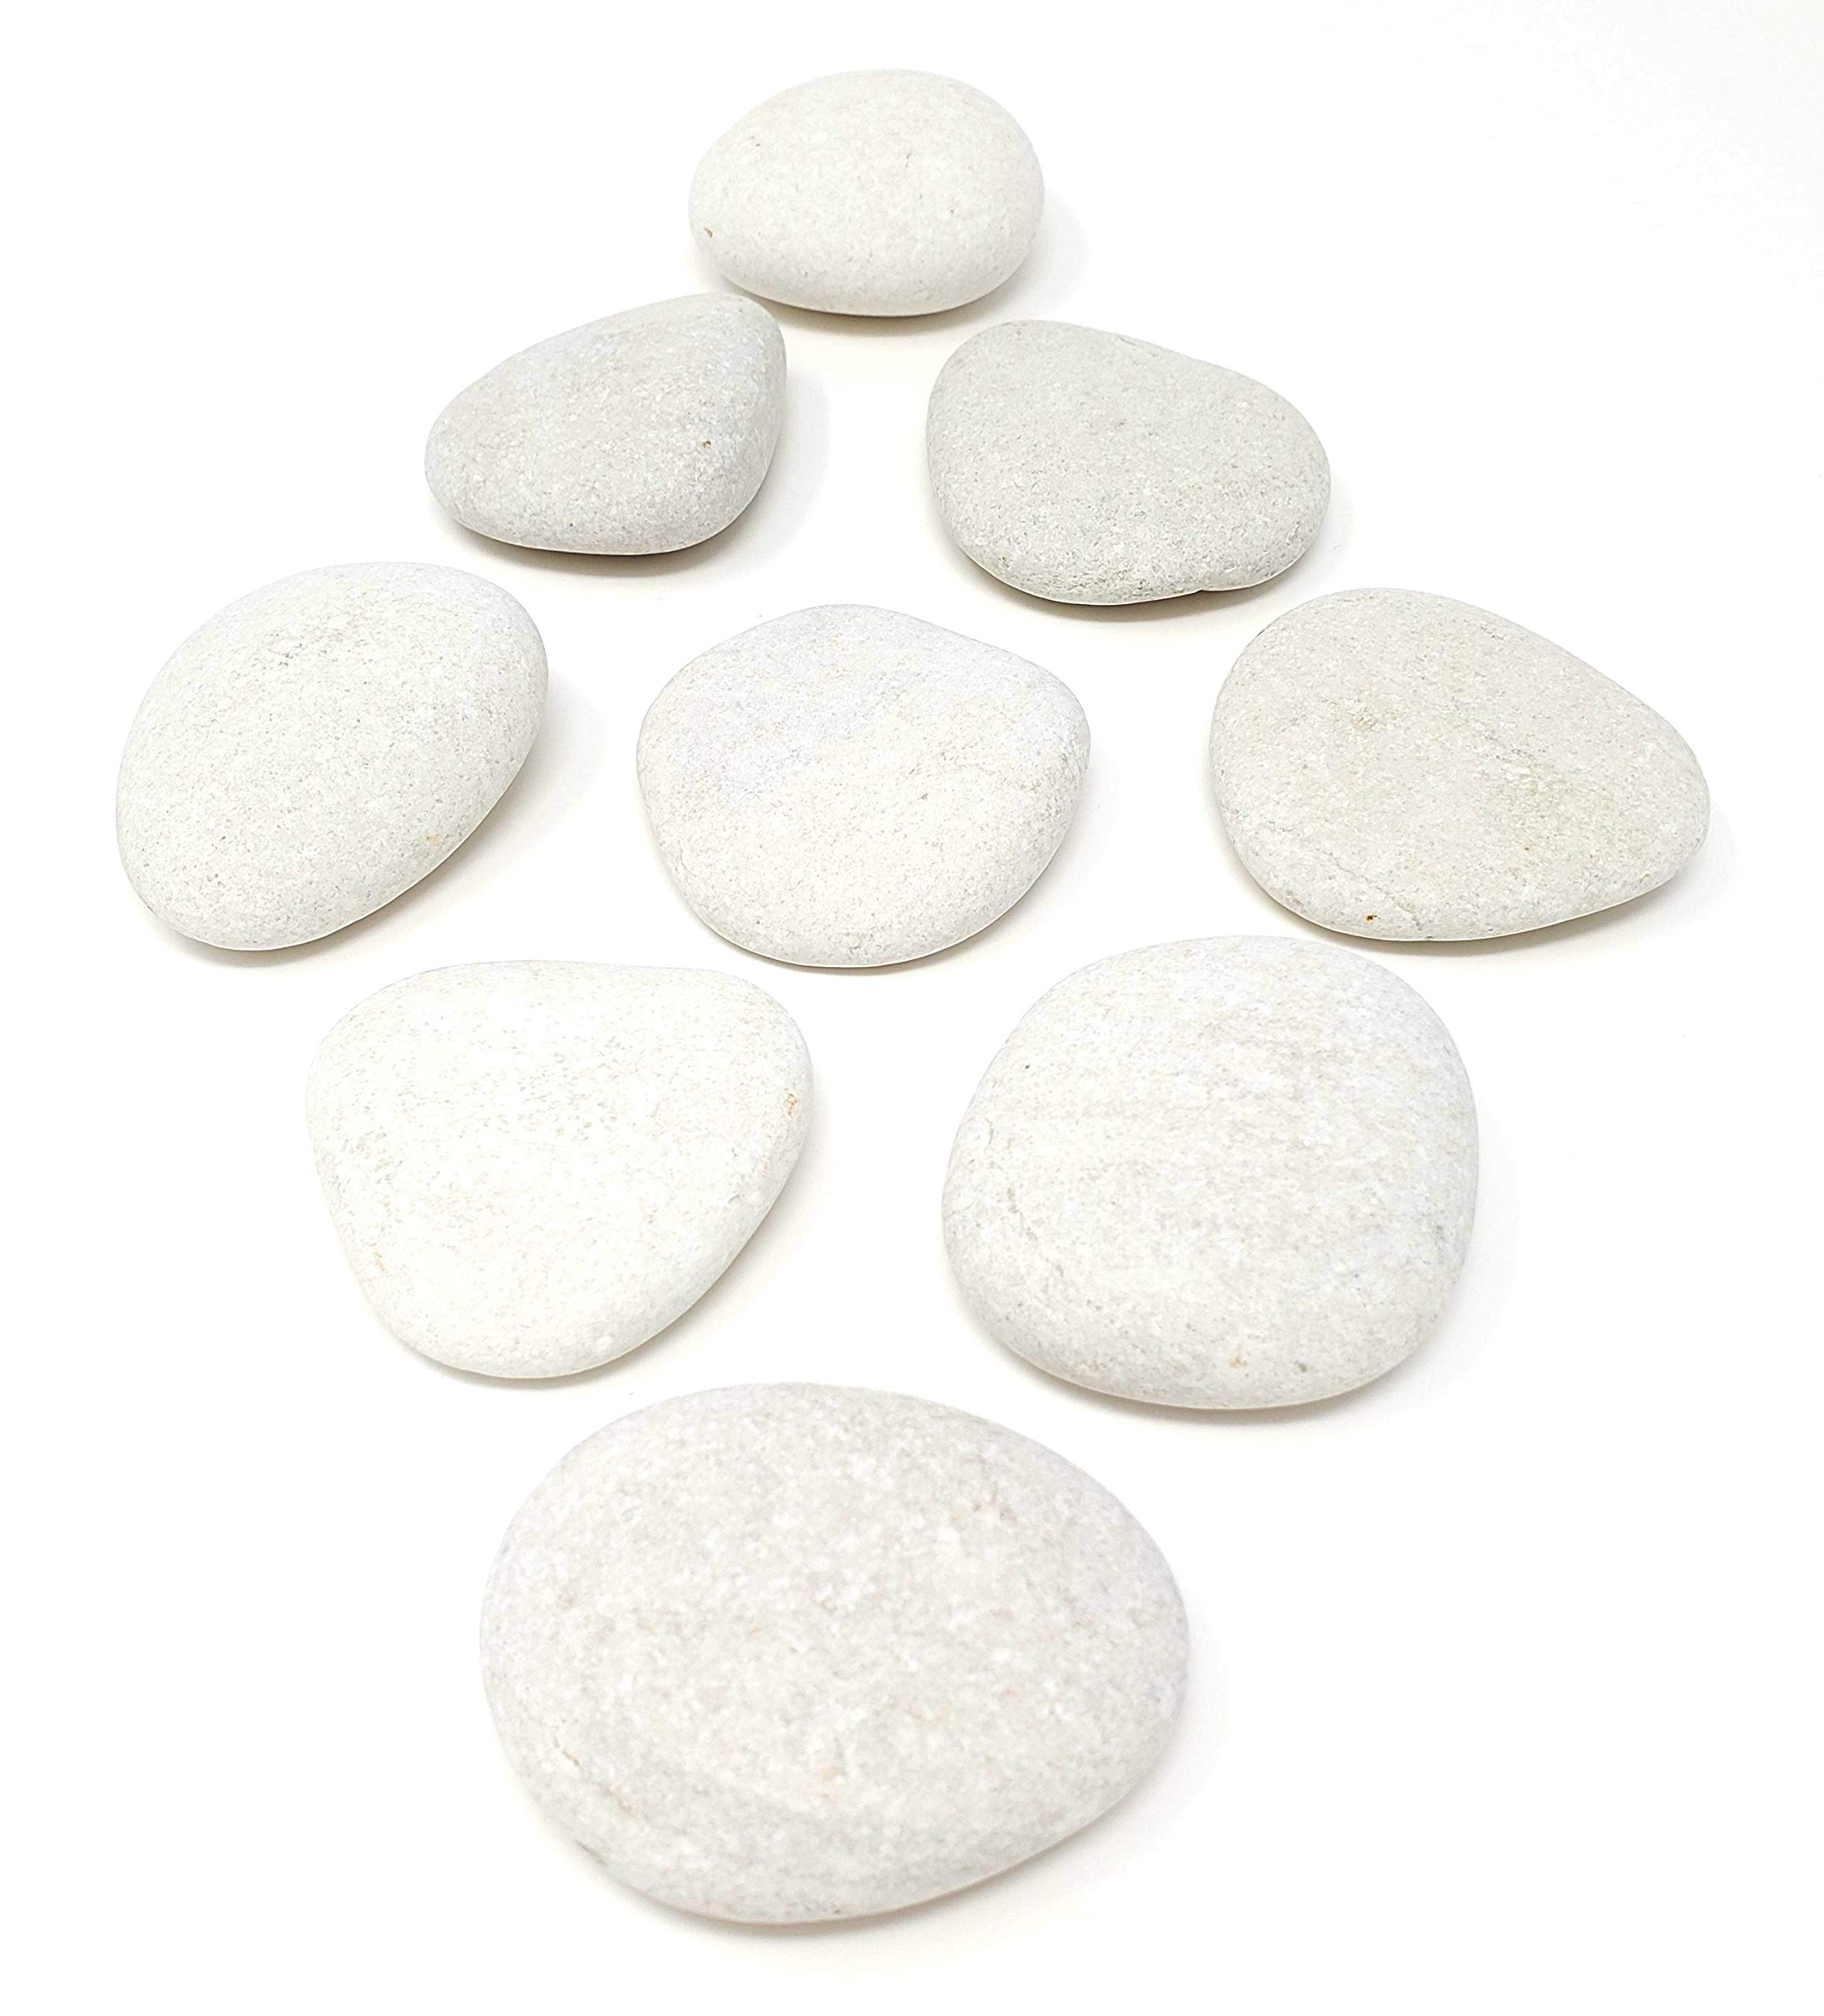 Kindness Rocks Smooth White Rounded Painting Rocks 20 lbs